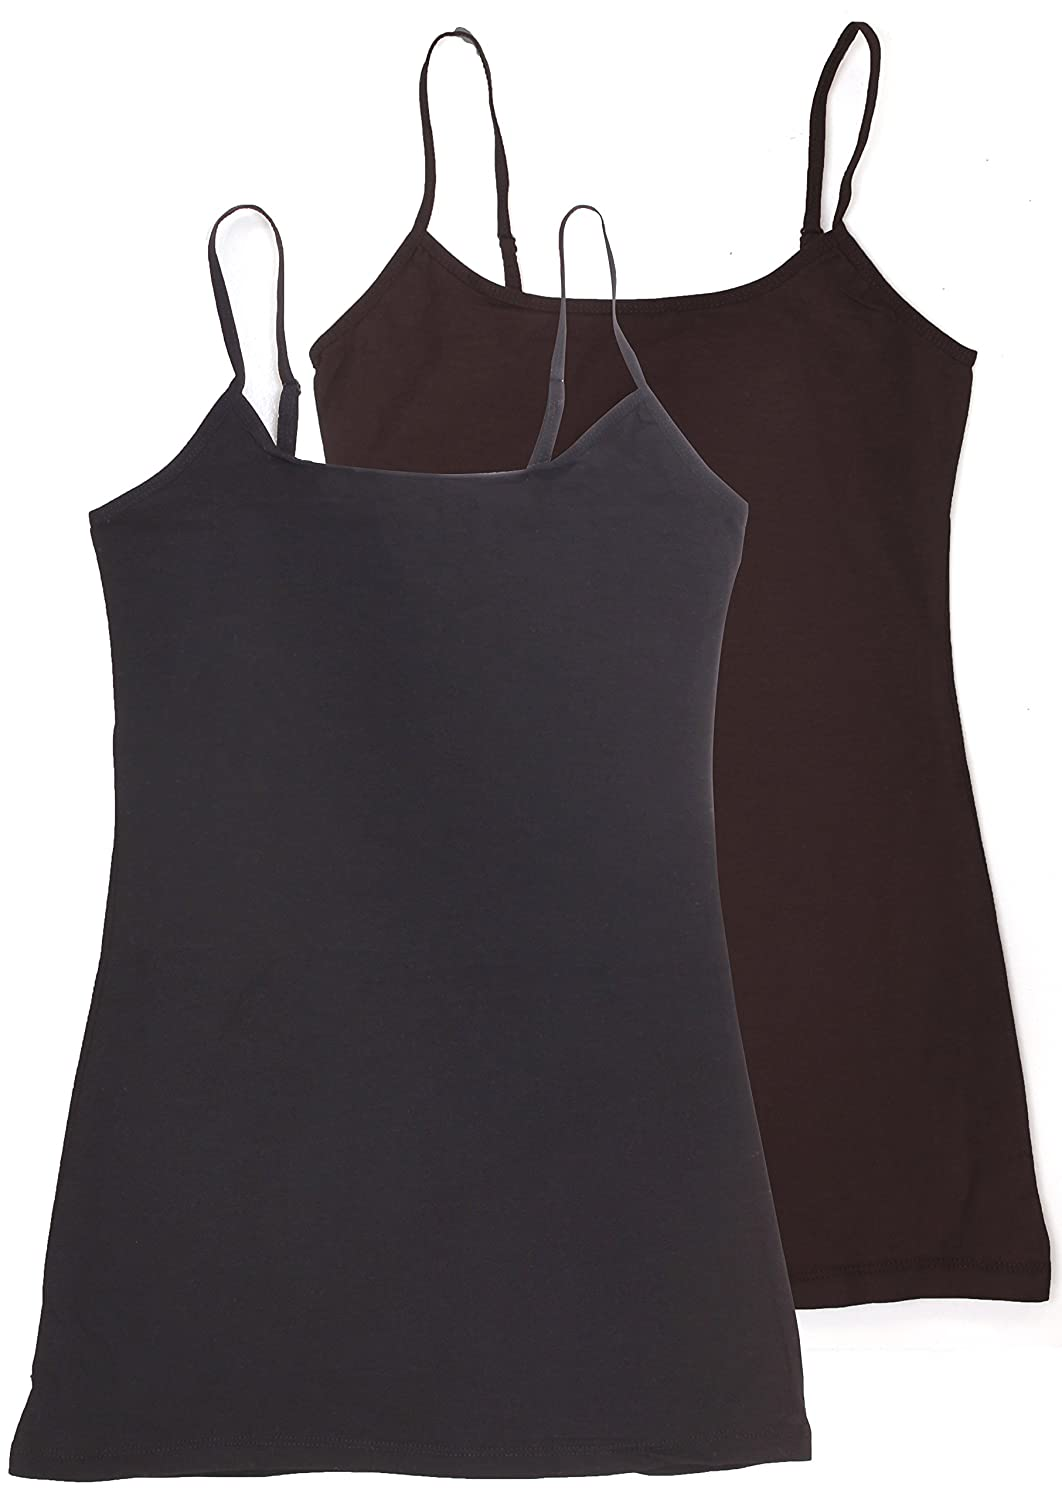 2698cef09d9a74 Top1  Active USA Basic Women s Long Cami Set With Built In Bra (2 Pack) -  Junior Sizes